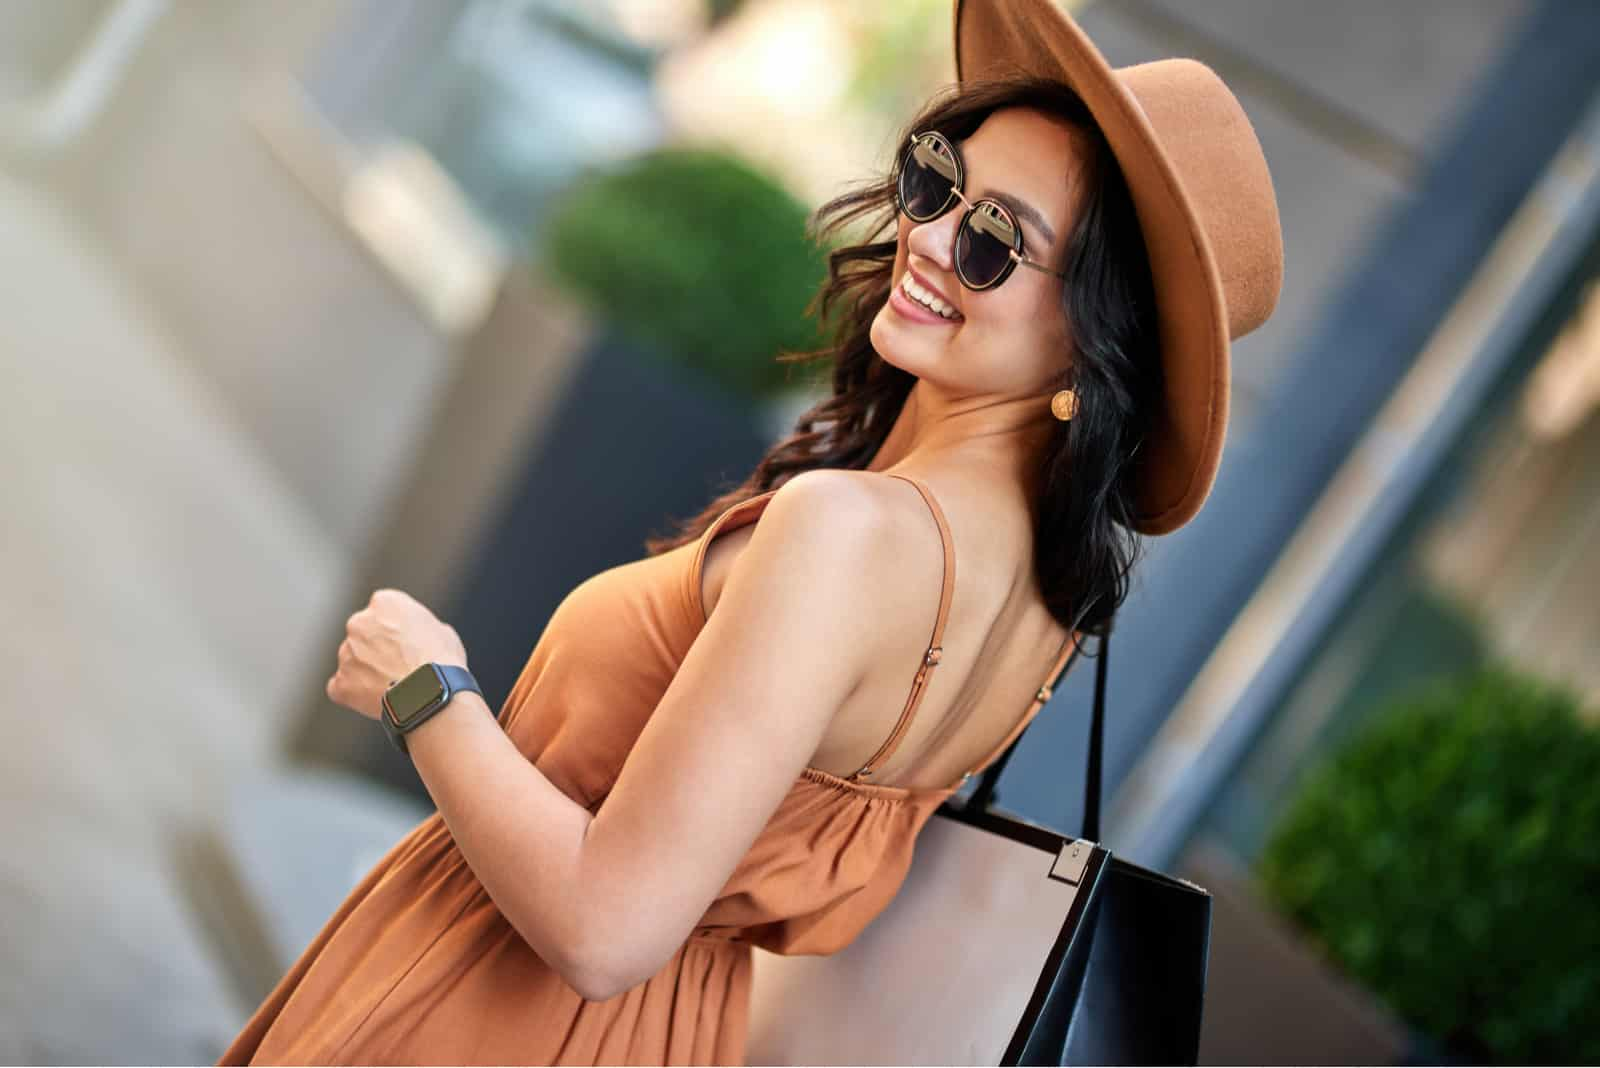 a smiling woman with a brown hat on her head walks down the street